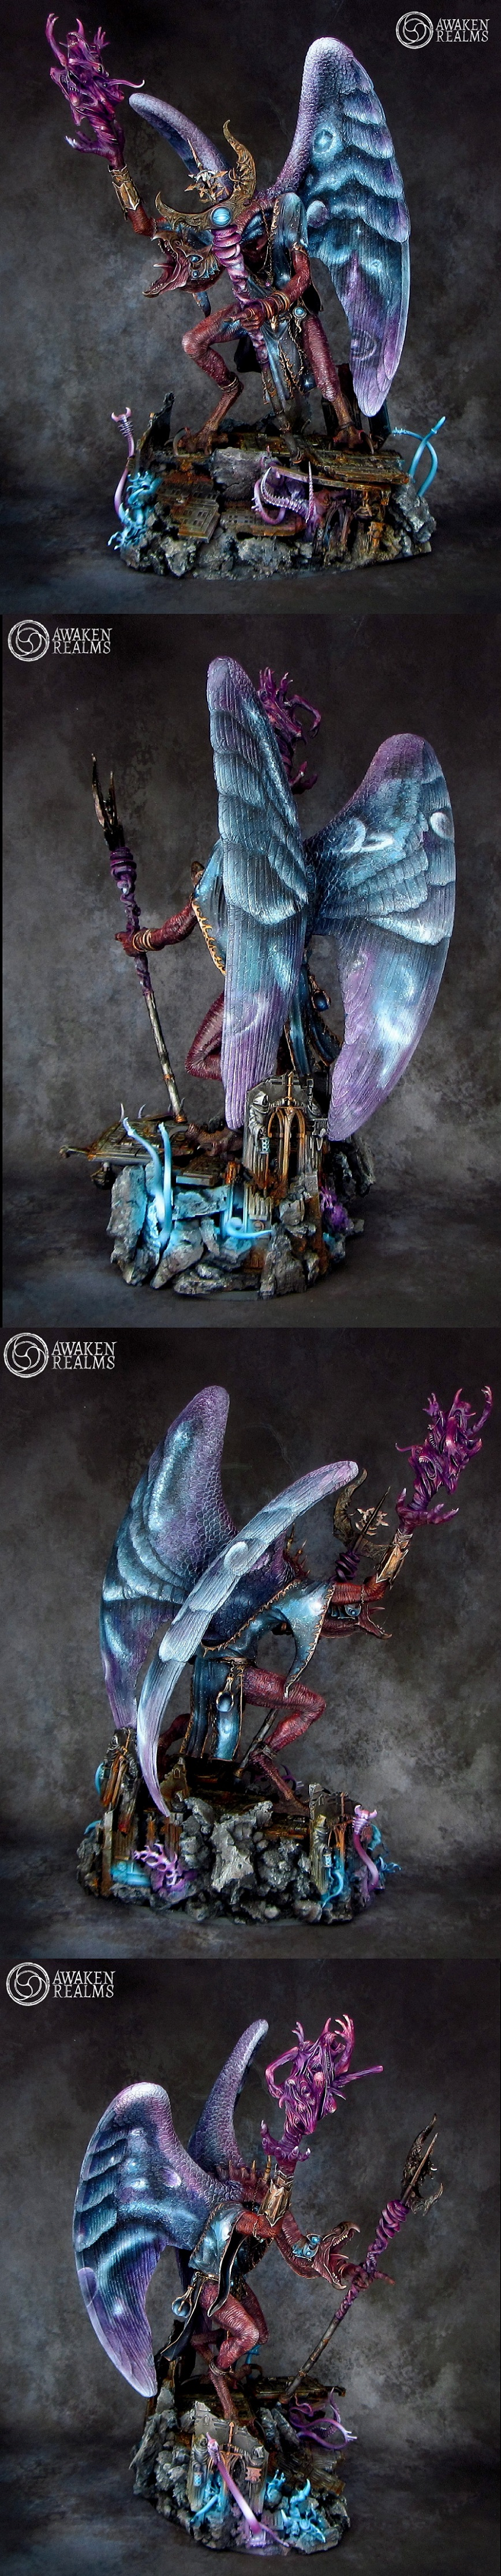 Lord of Change, Greater Daemon of Tzeentch